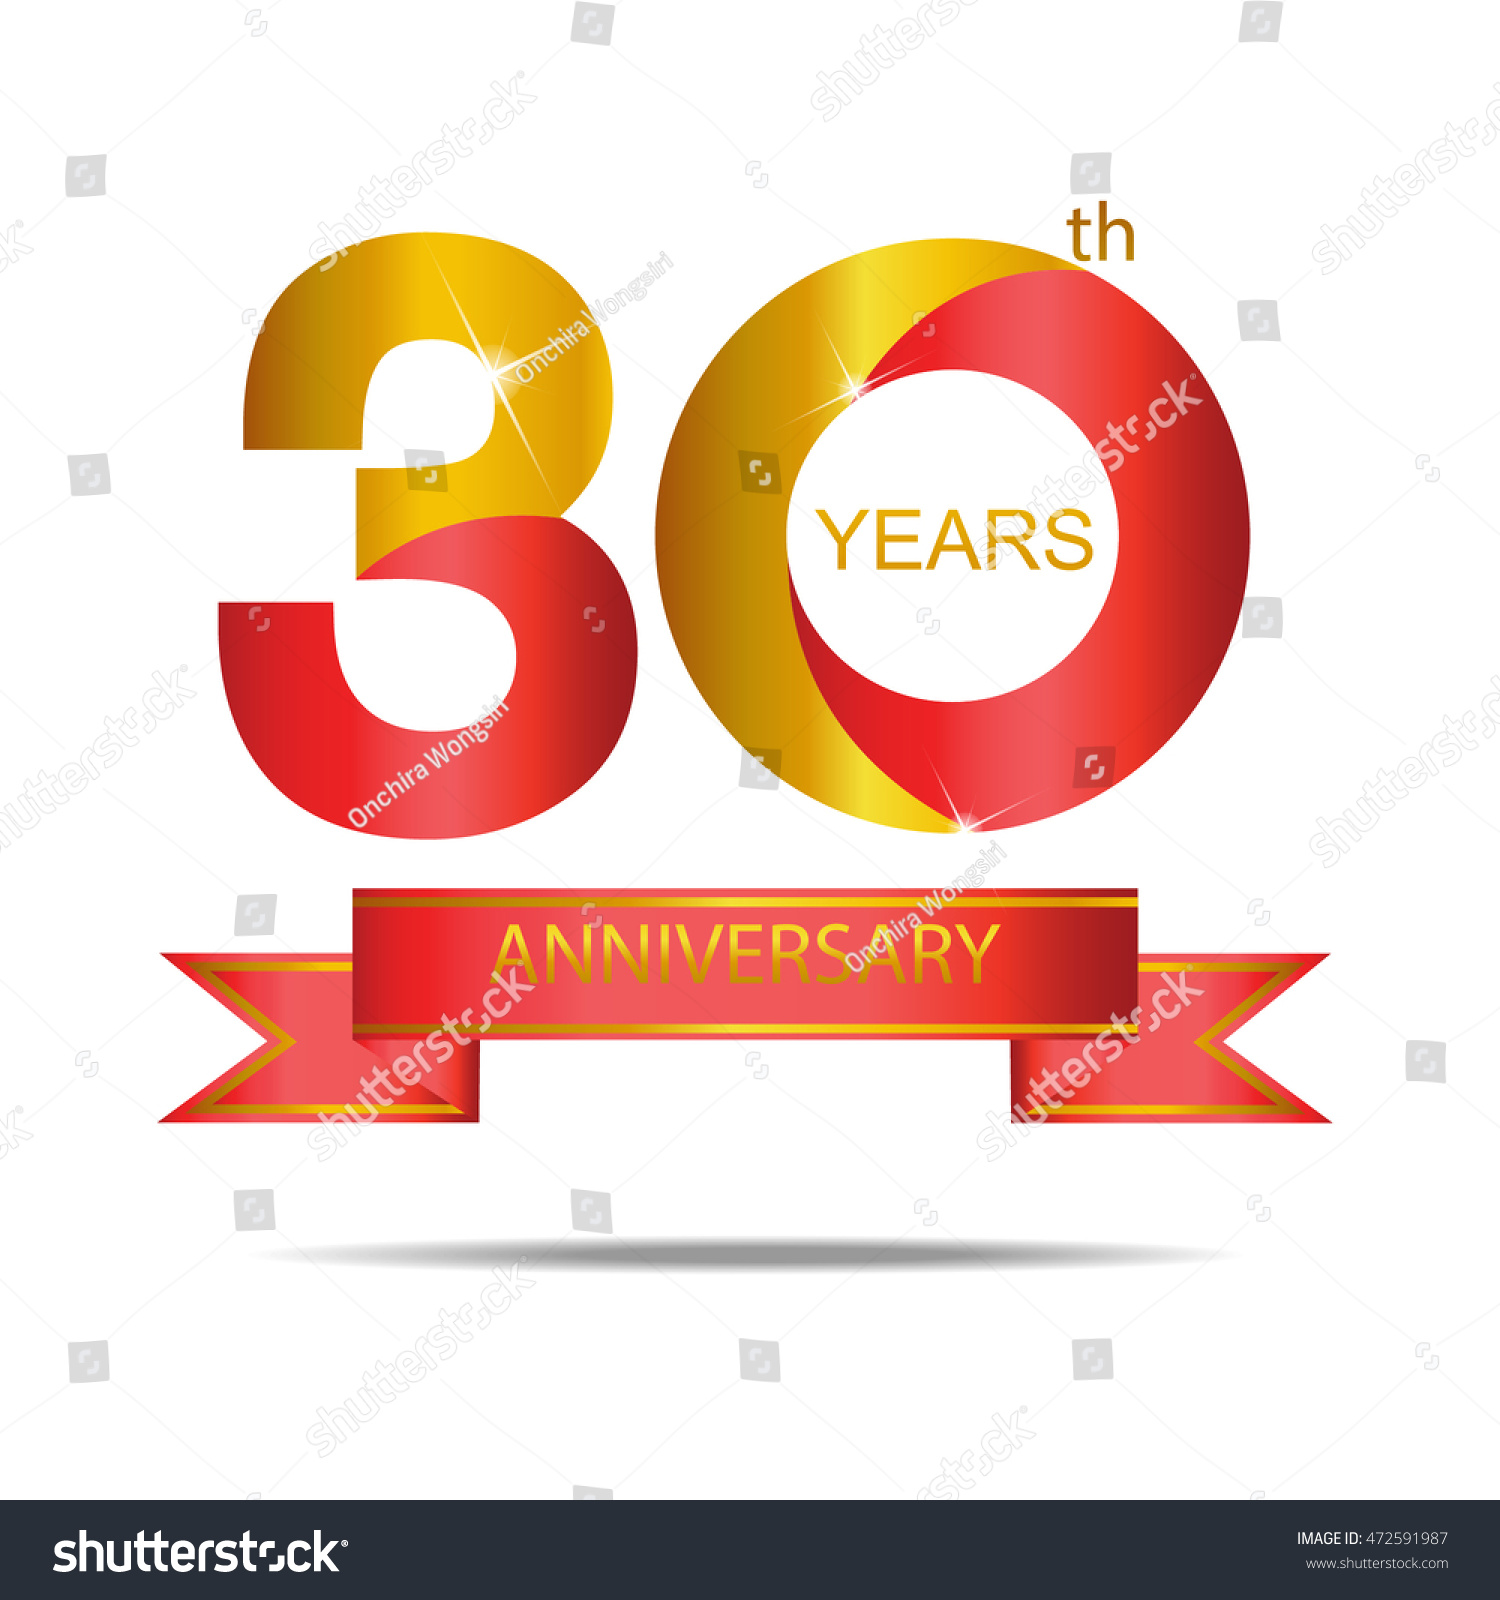 30 Year Anniversary Symbol: Template Logo 30th Anniversary Red Gold Stock Vector